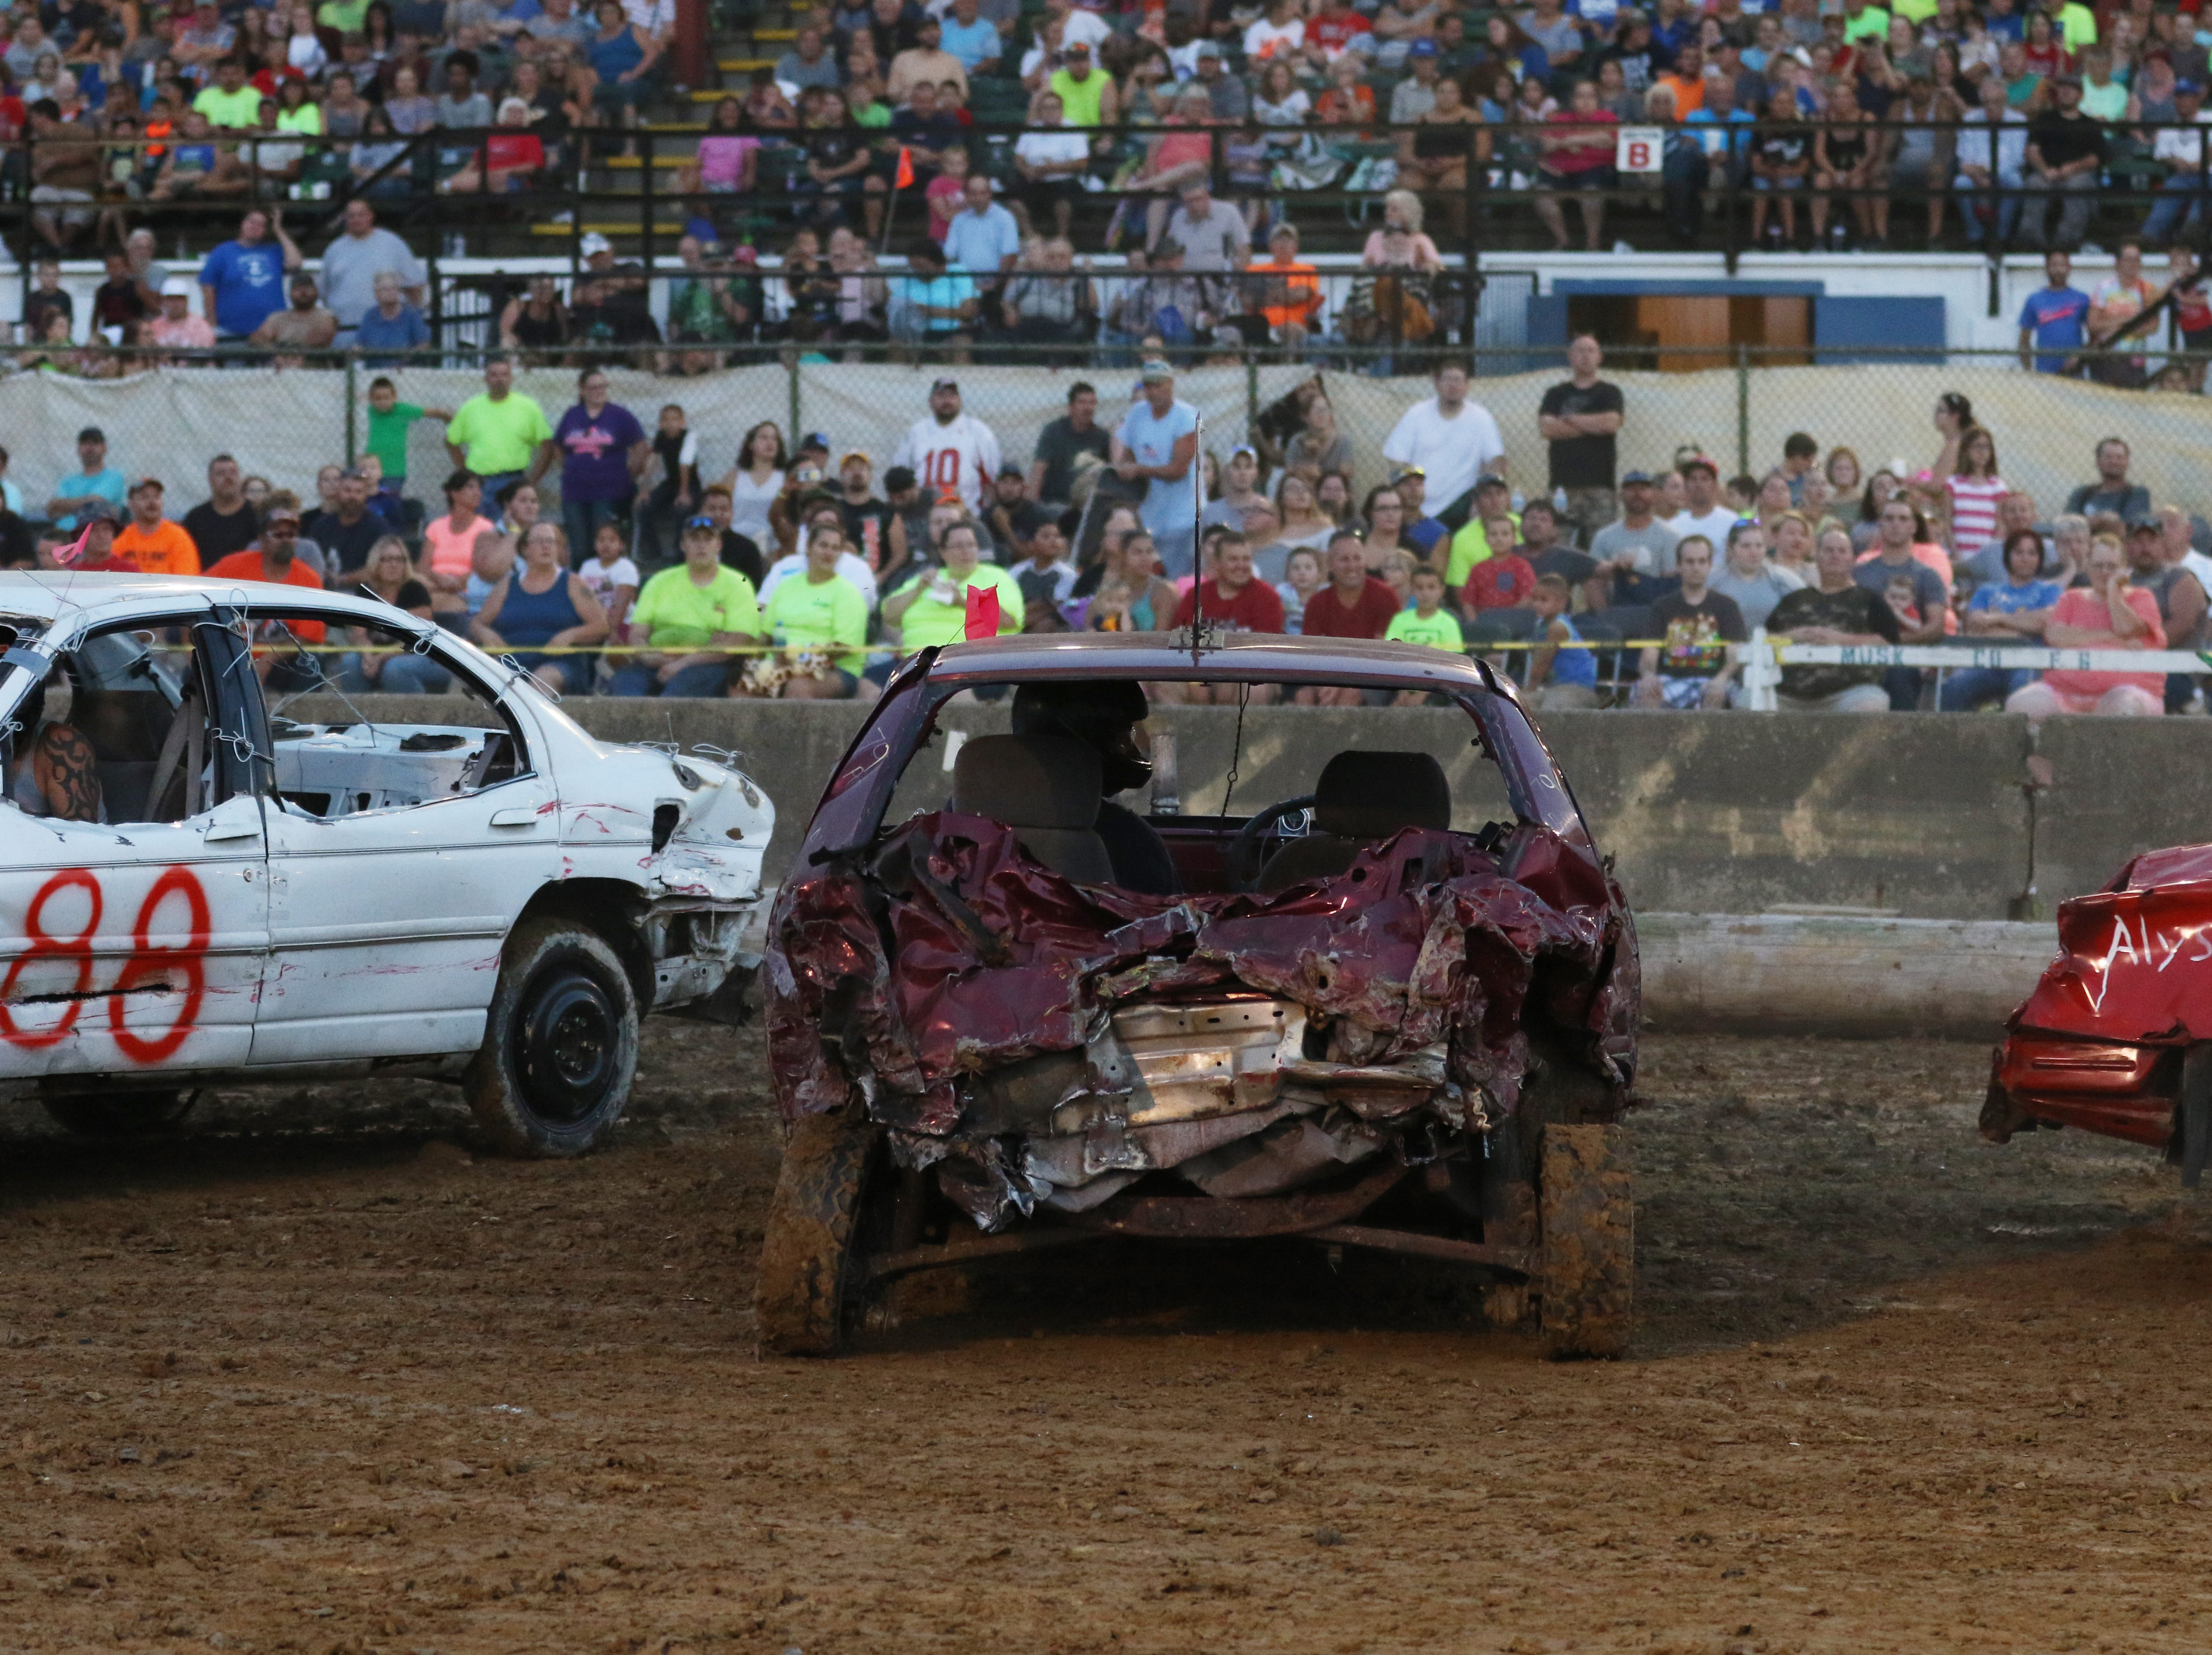 Jim Dady during the Sarge and Sons Demolition Derby at the Muskingum County Fair on Tuesday.